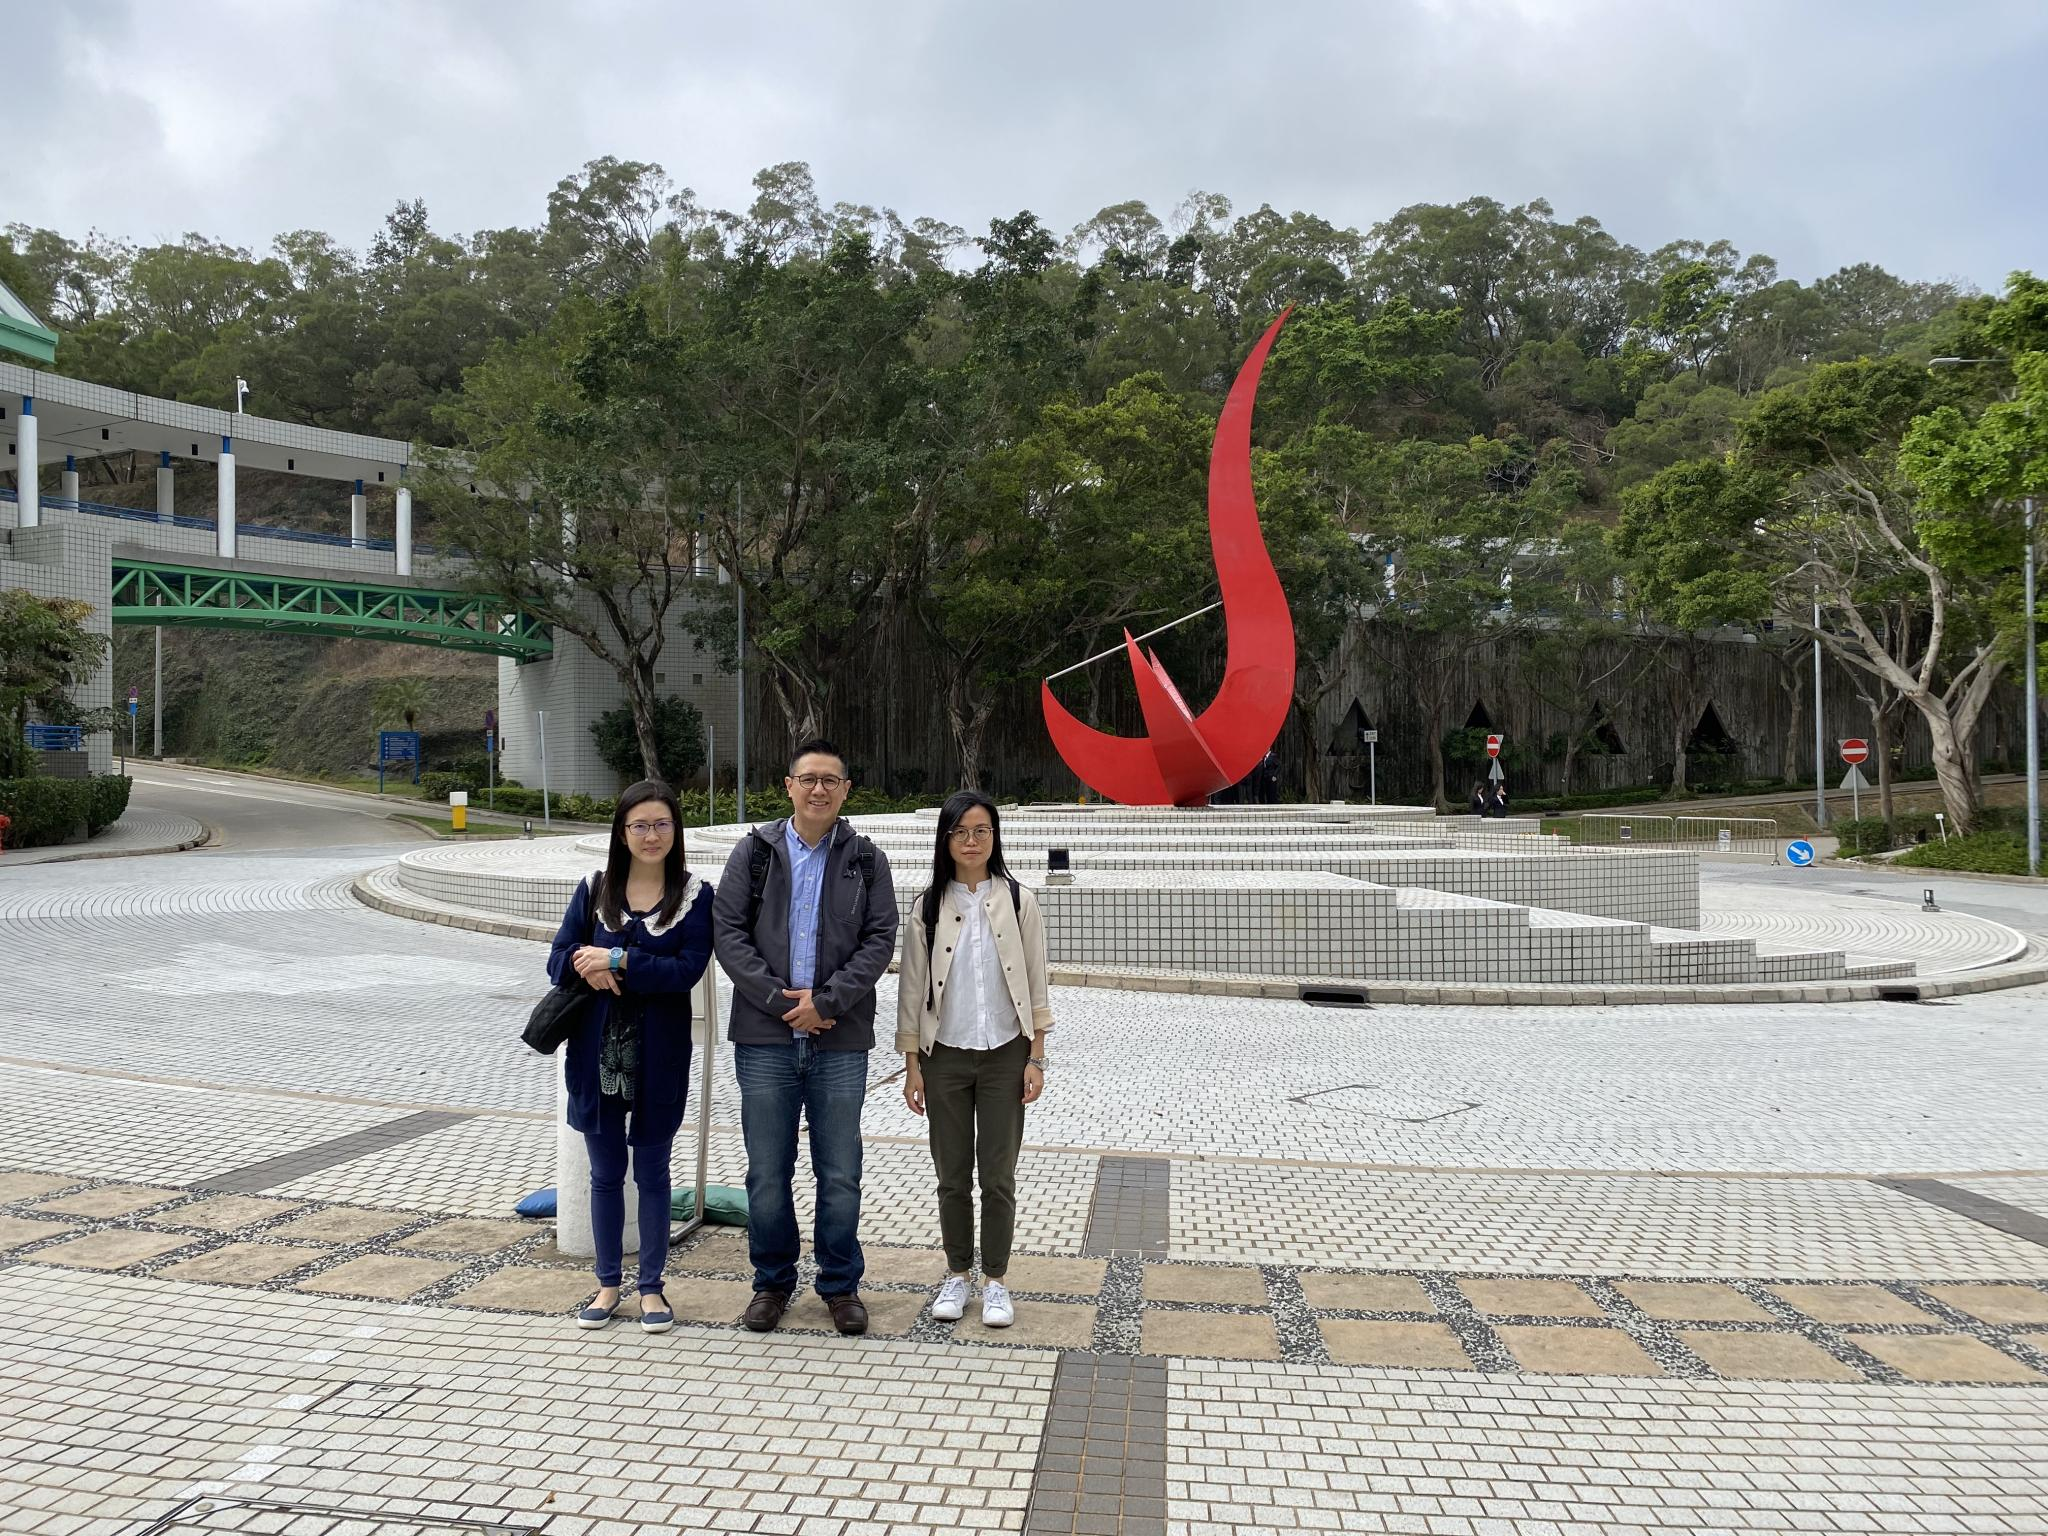 We arrived at the Hong Kong University of Science and Technology.